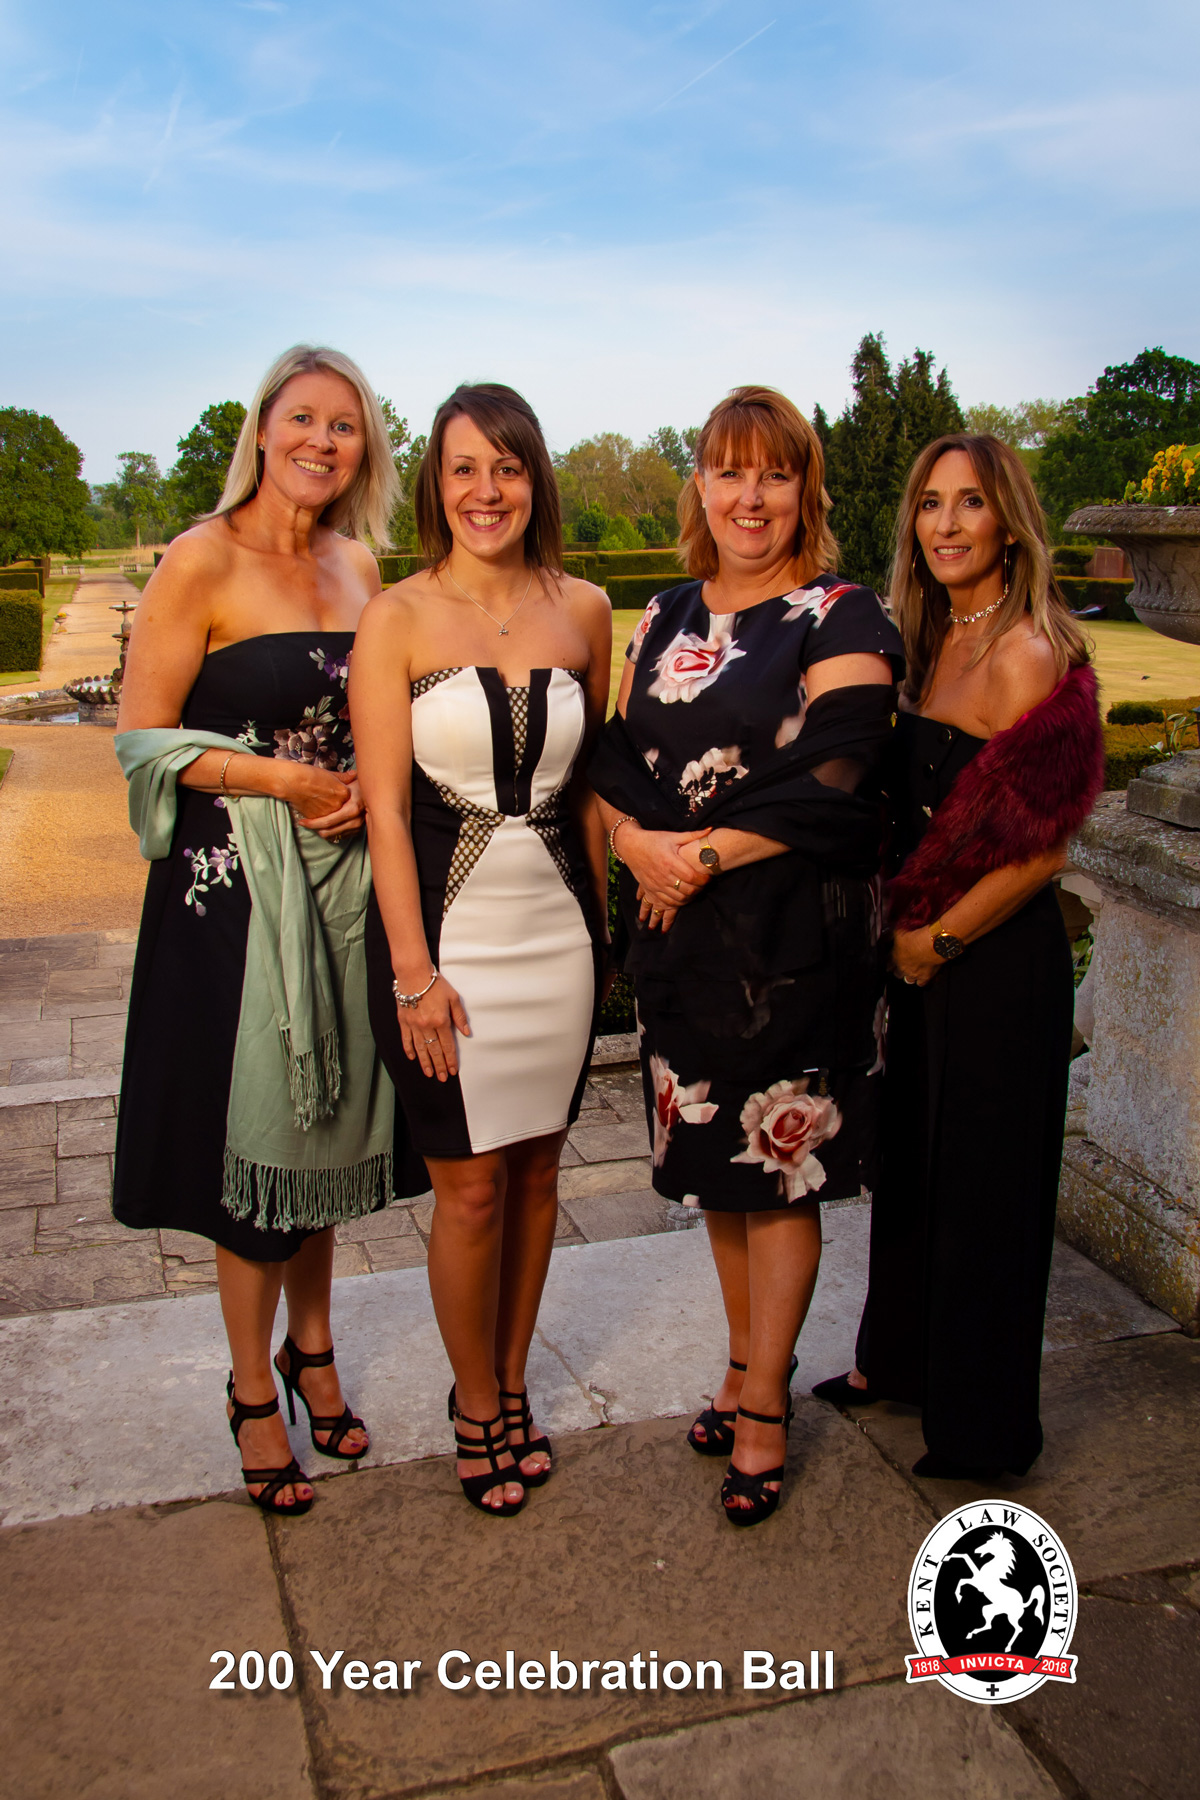 Hatton Law at the Kent Law Society 200 Year Celebration Ball